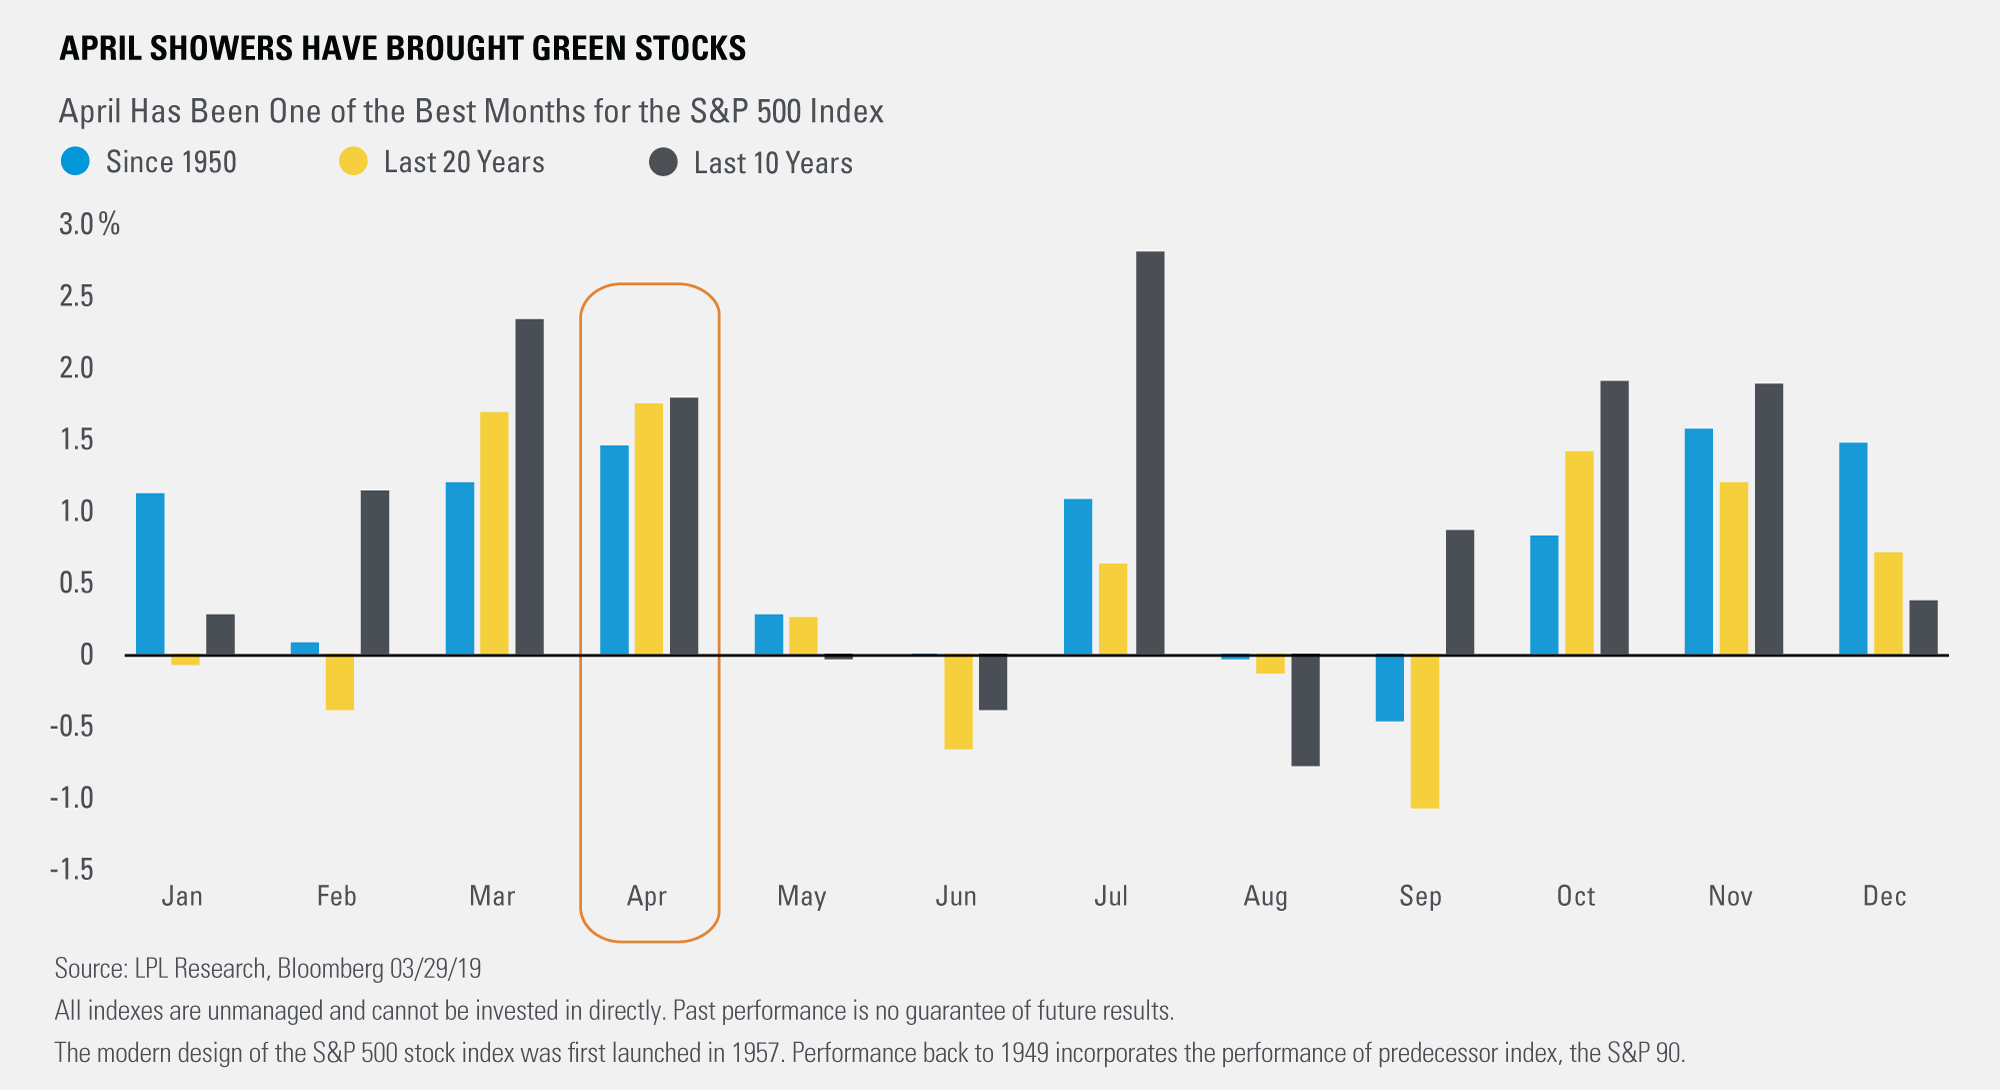 April-Showers-Have-Brought-Green-Stocks